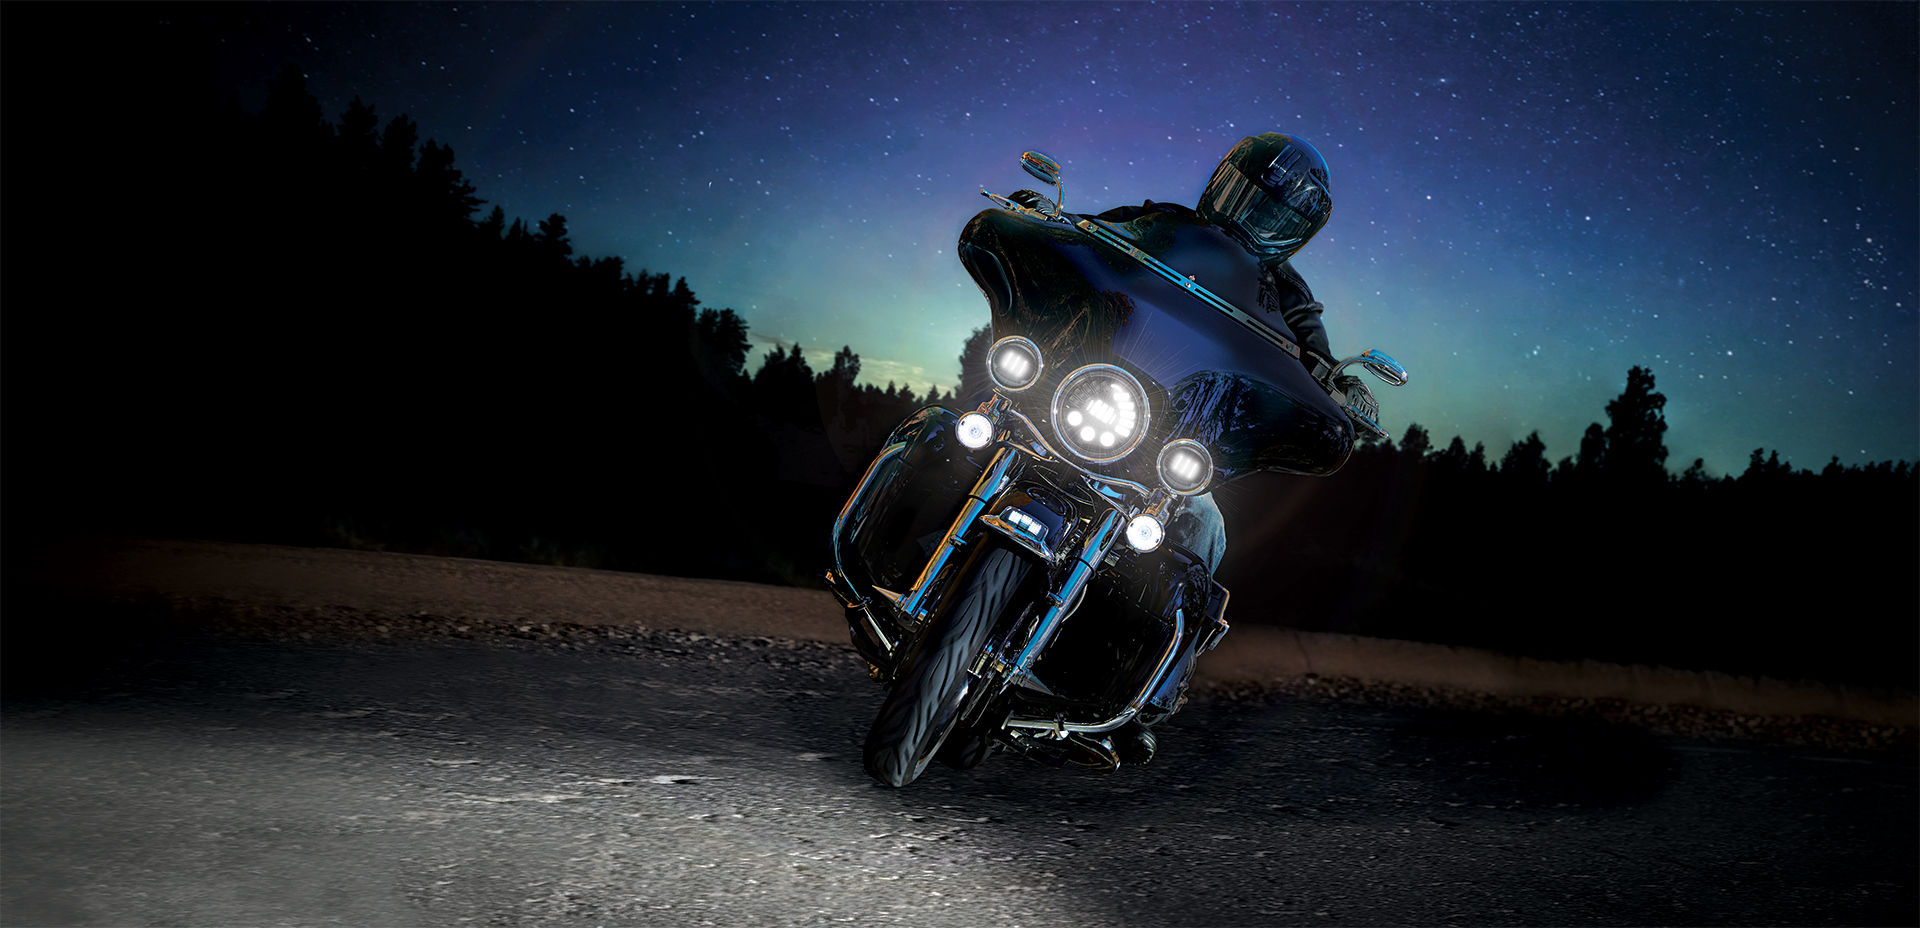 The Nw Adaptive 2 Series LED Motorcycle Headlights. Now with Adaptive Functionality on High Beam!